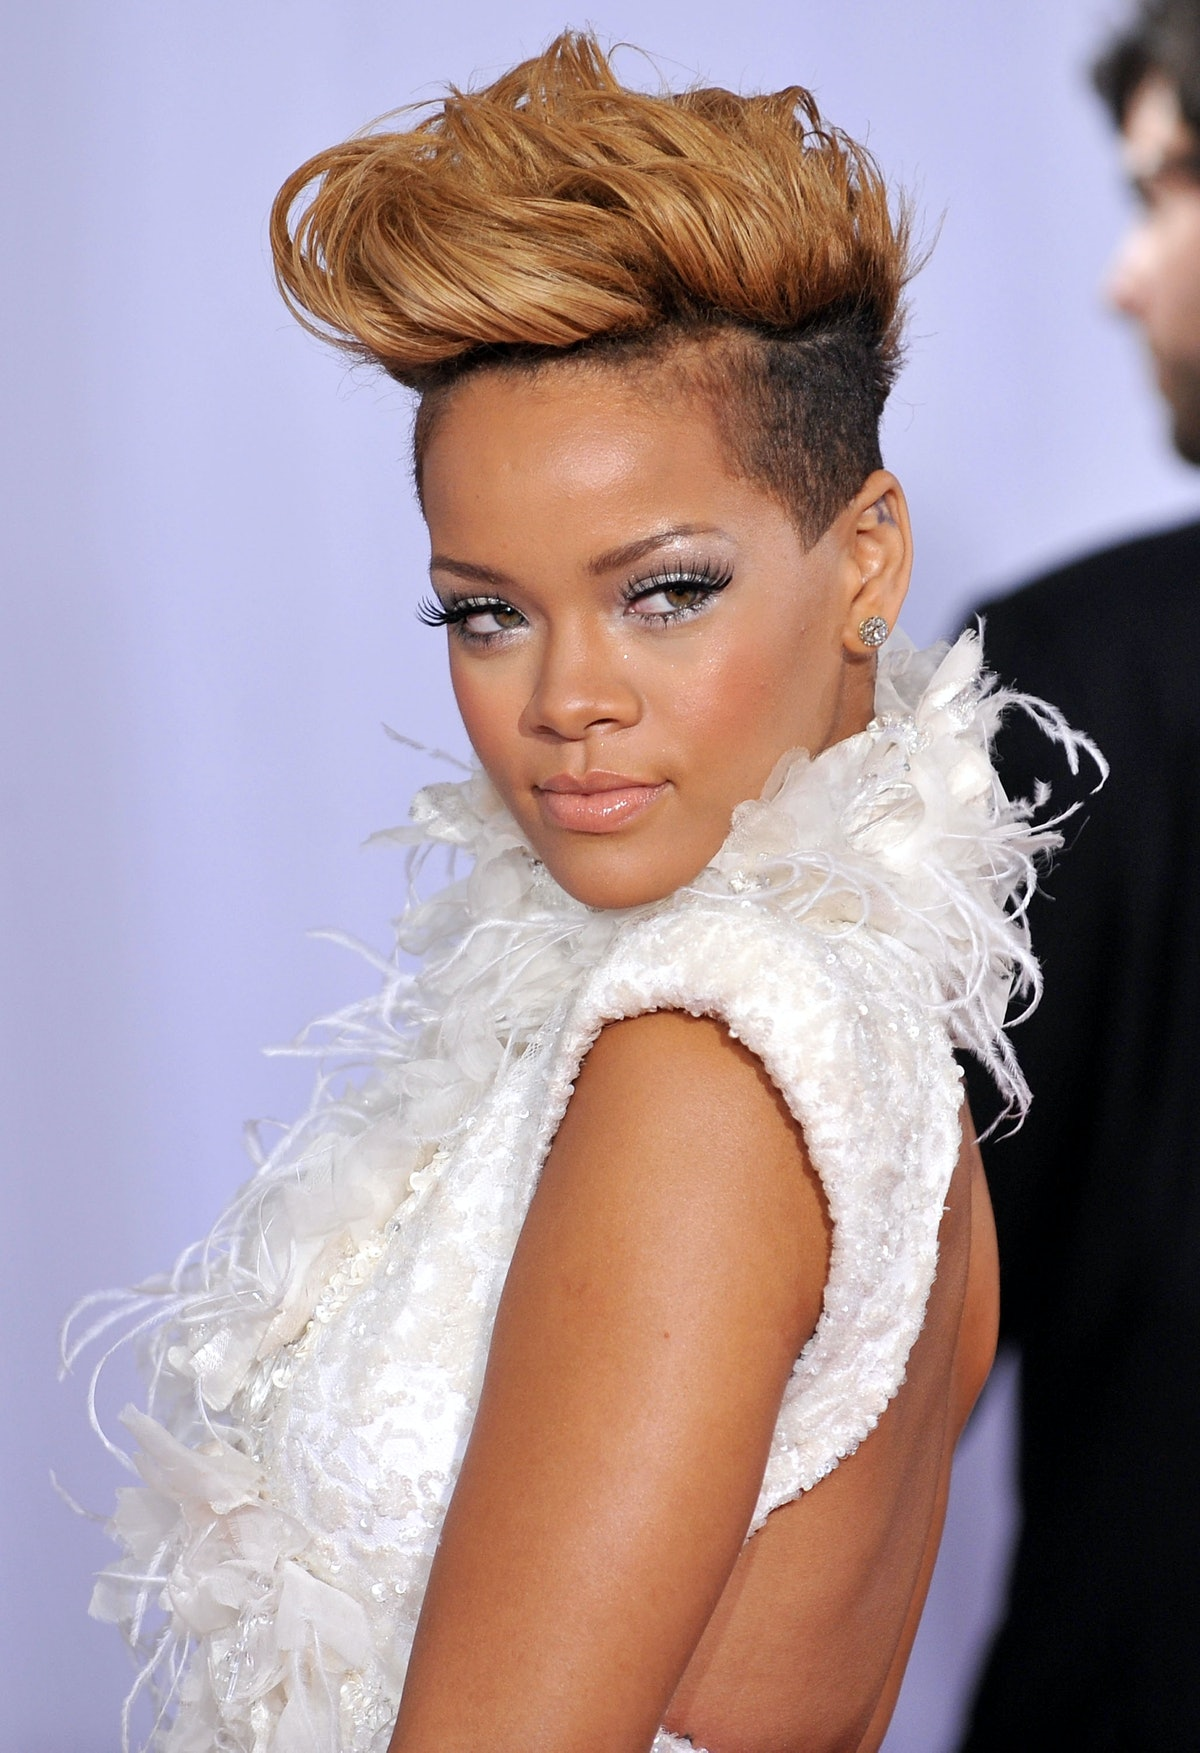 Rihanna arrives at the 52nd Annual GRAMMY Awards in 2010